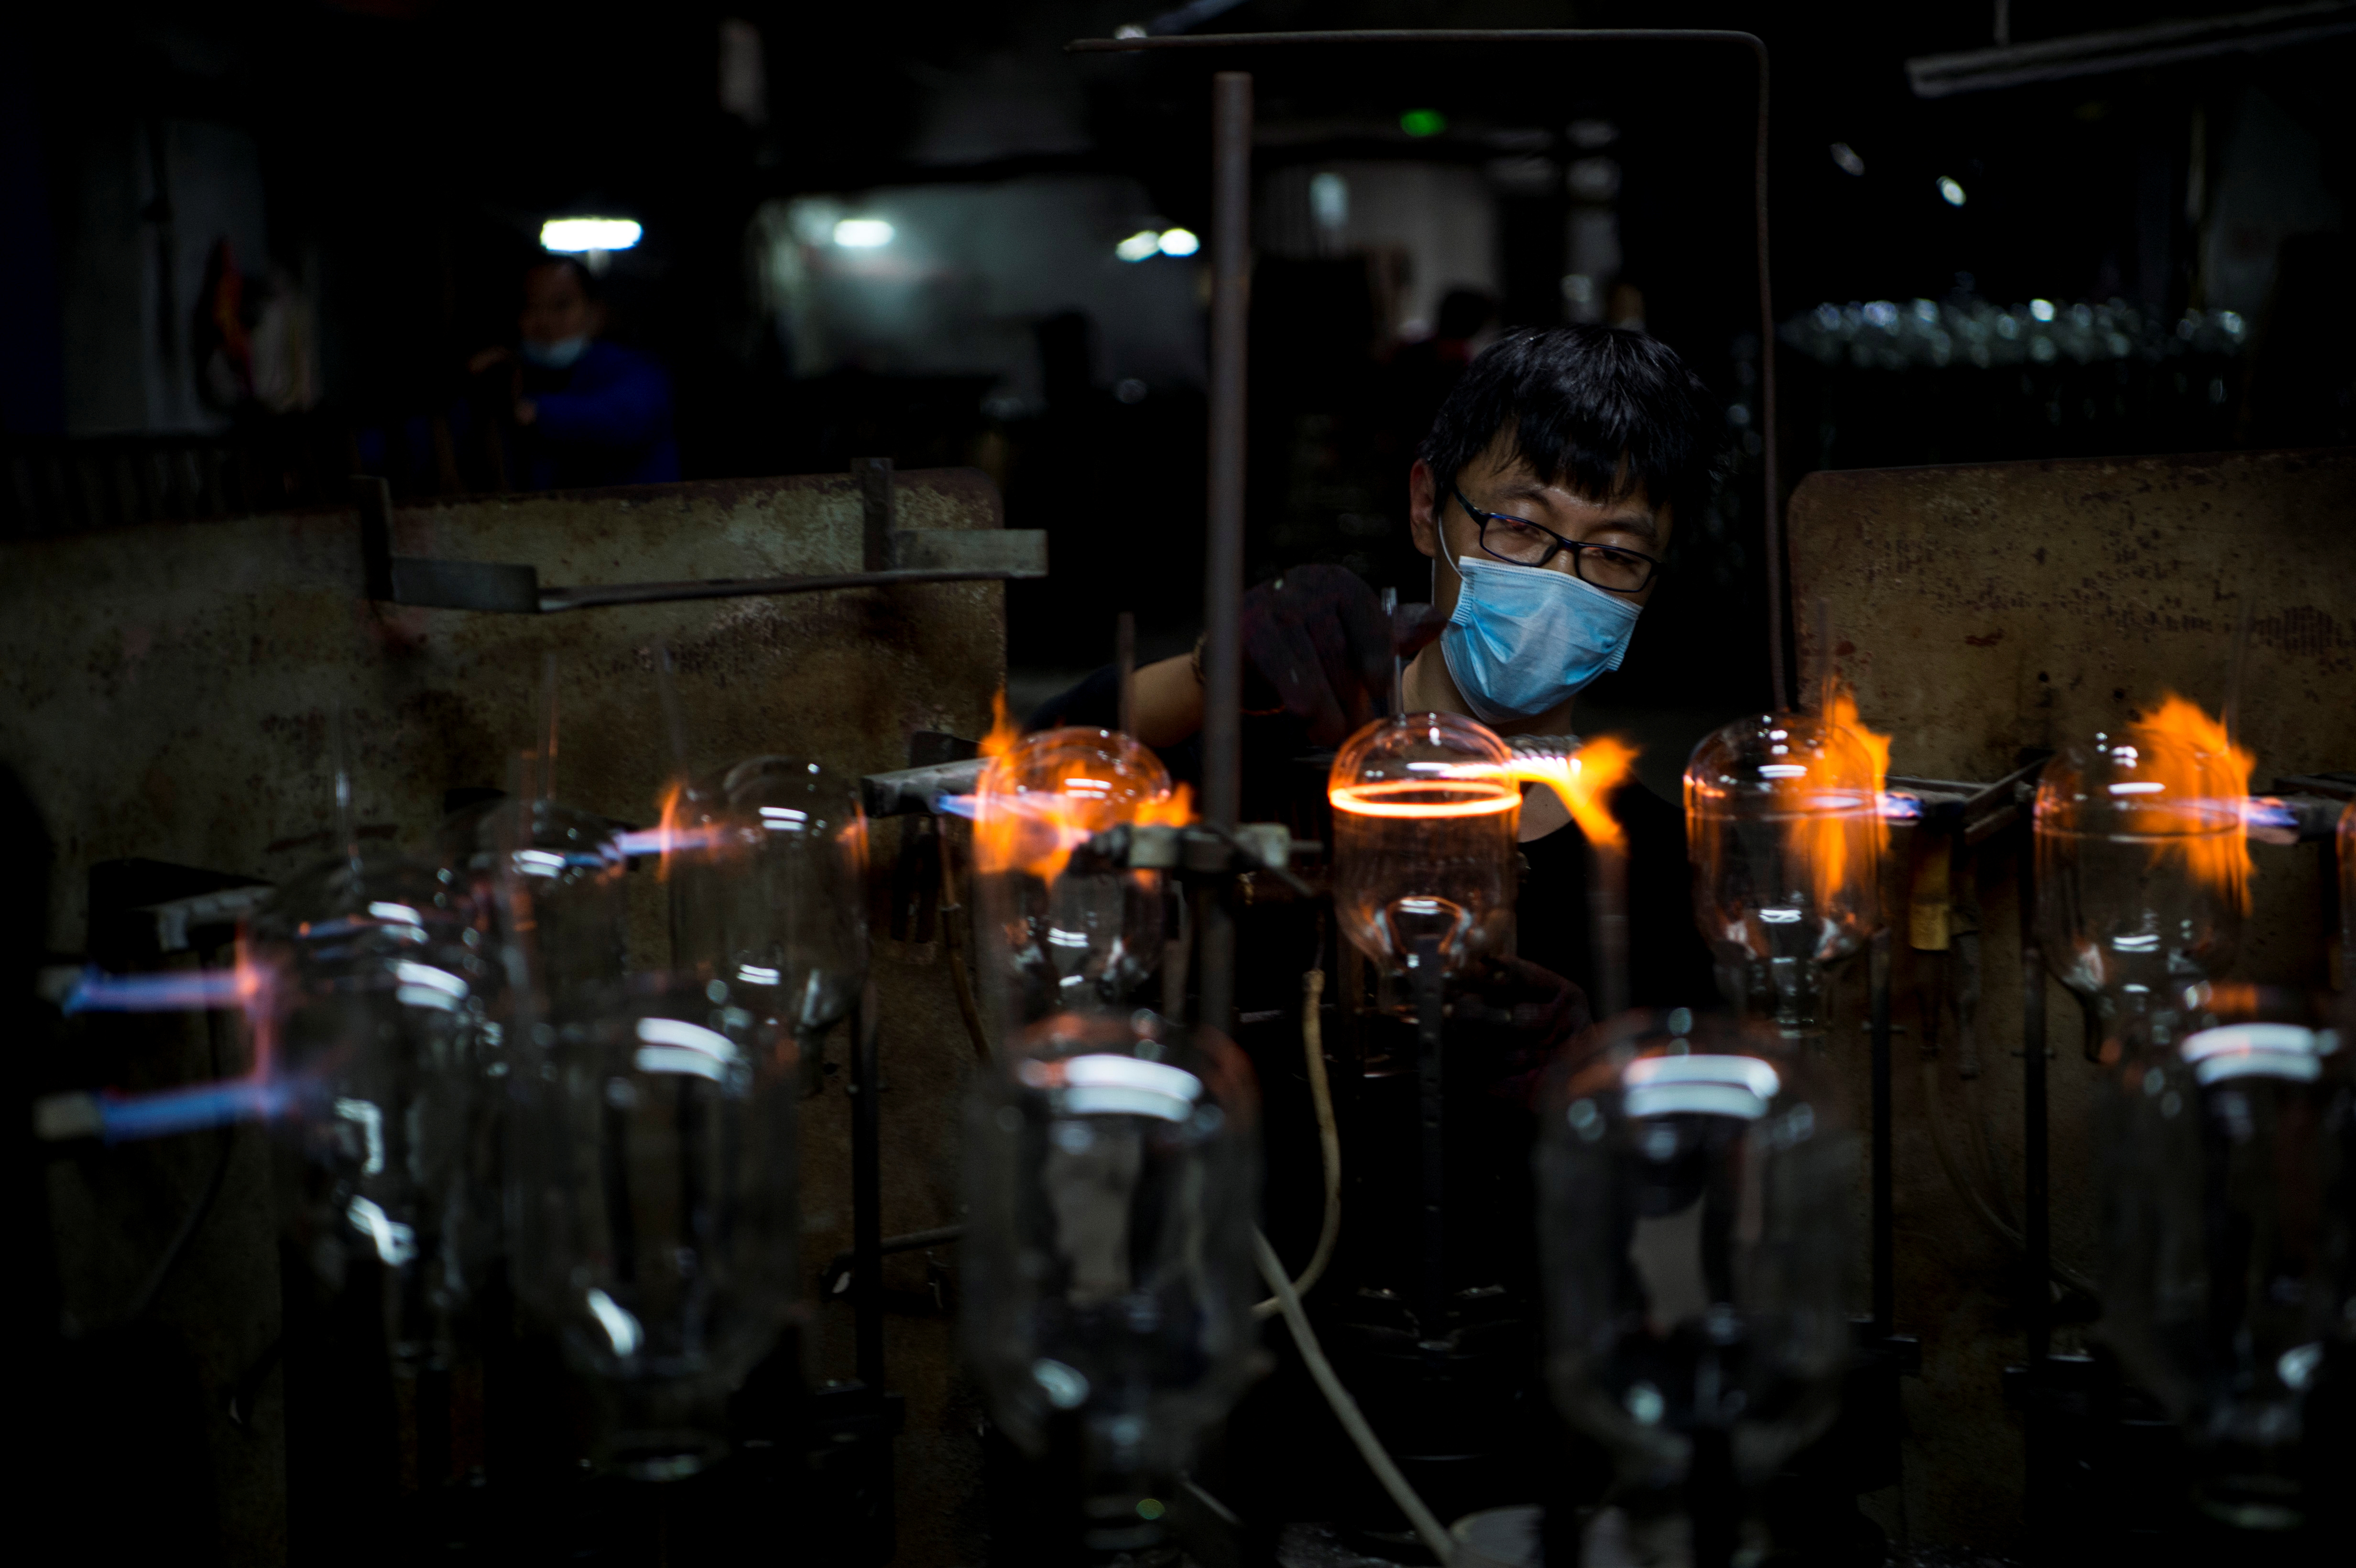 A worker wearing a face mask works on a production line manufacturing glassware products at a factory in Haian, Jiangsu province, China February 29, 2020. Picture taken February 29, 2020. China Daily via REUTERS/File photo